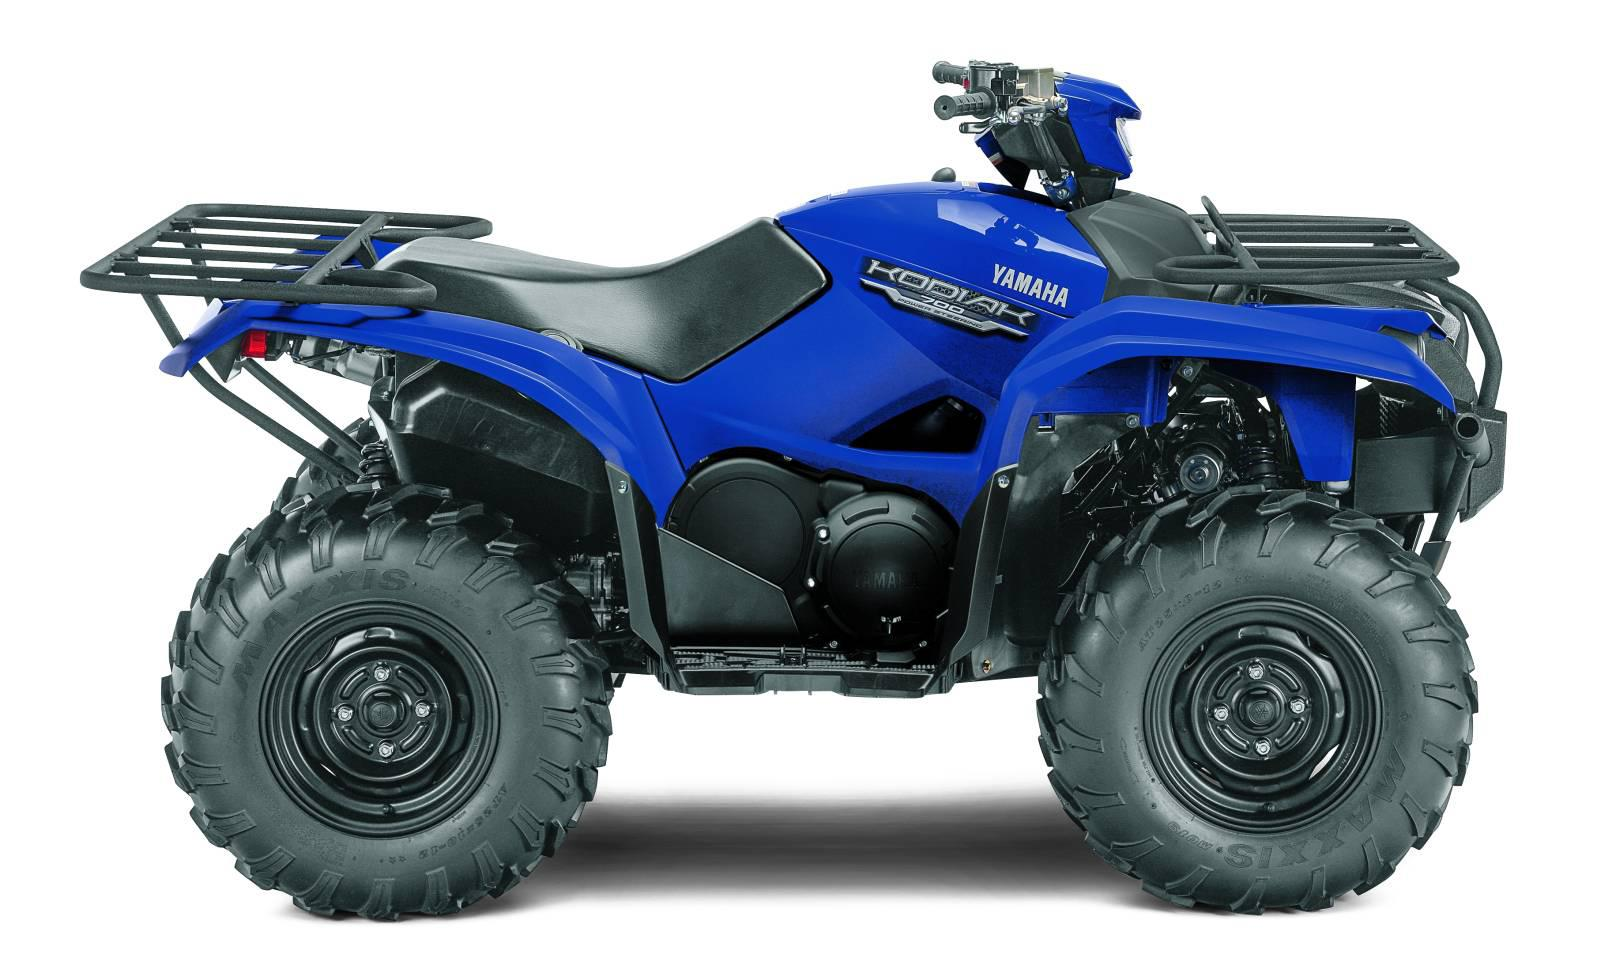 yamaha grizzly logo - photo #17